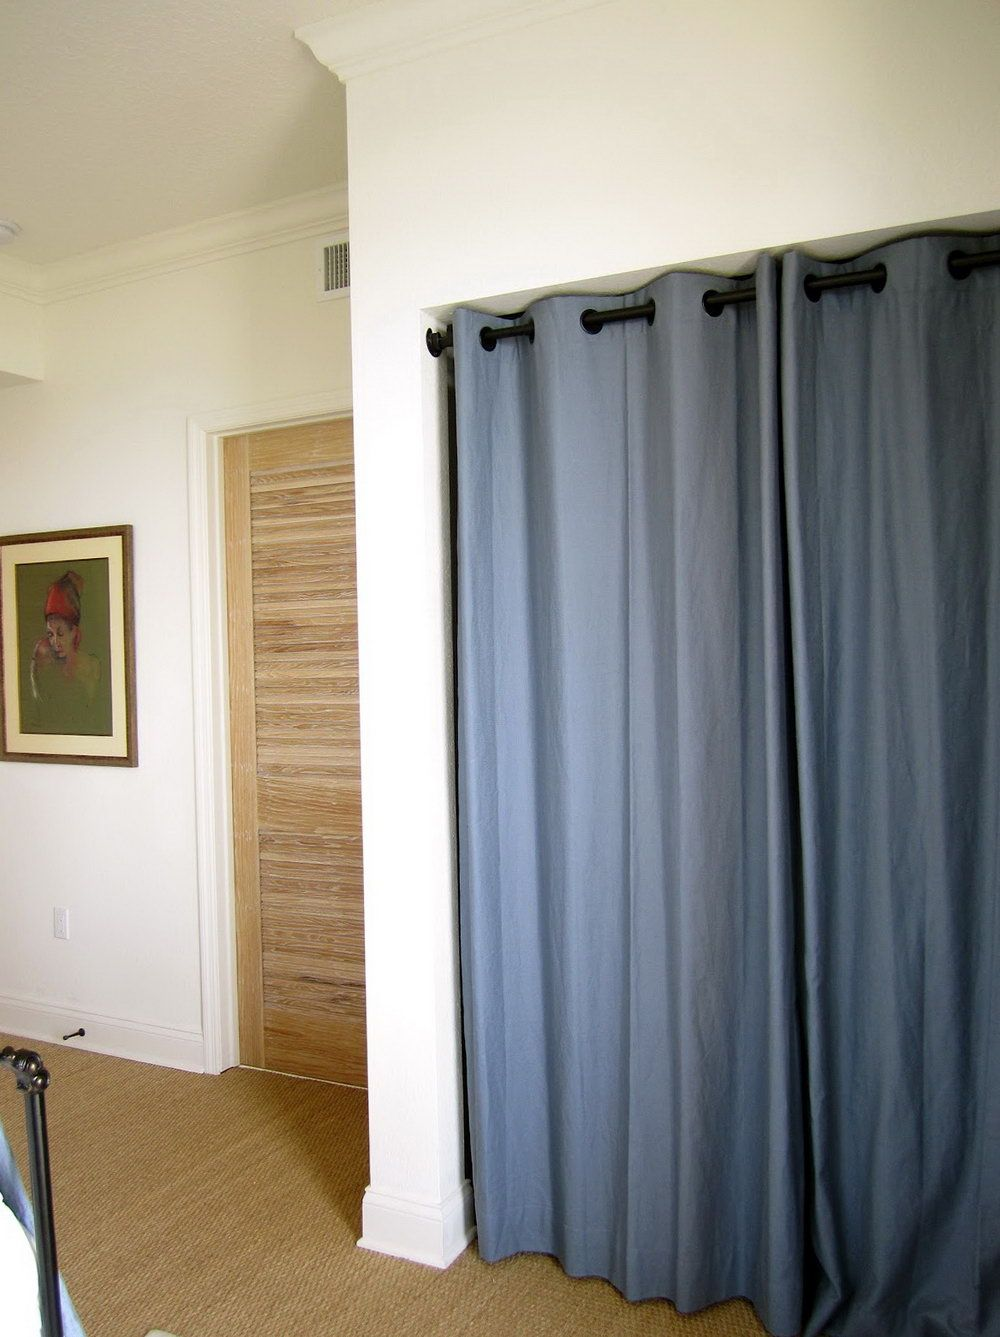 Best Closet Door Ideas To Spruce Up Your Room Curtains For Closet Doors Bedroom Closet Doors Closet Bedroom